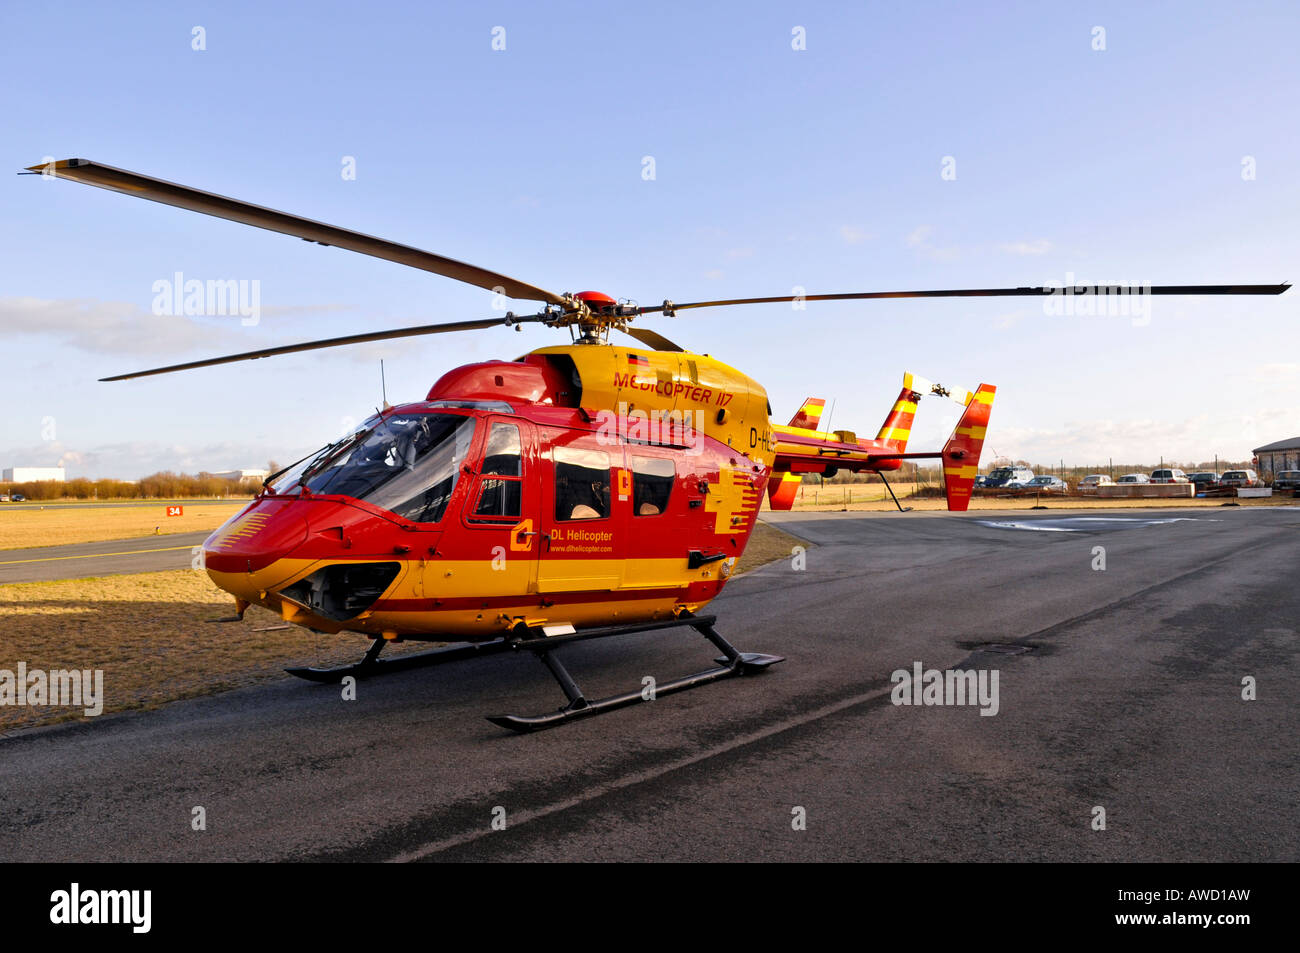 eurocopter medicopter bk 117 stockfoto bild 16542864 alamy. Black Bedroom Furniture Sets. Home Design Ideas